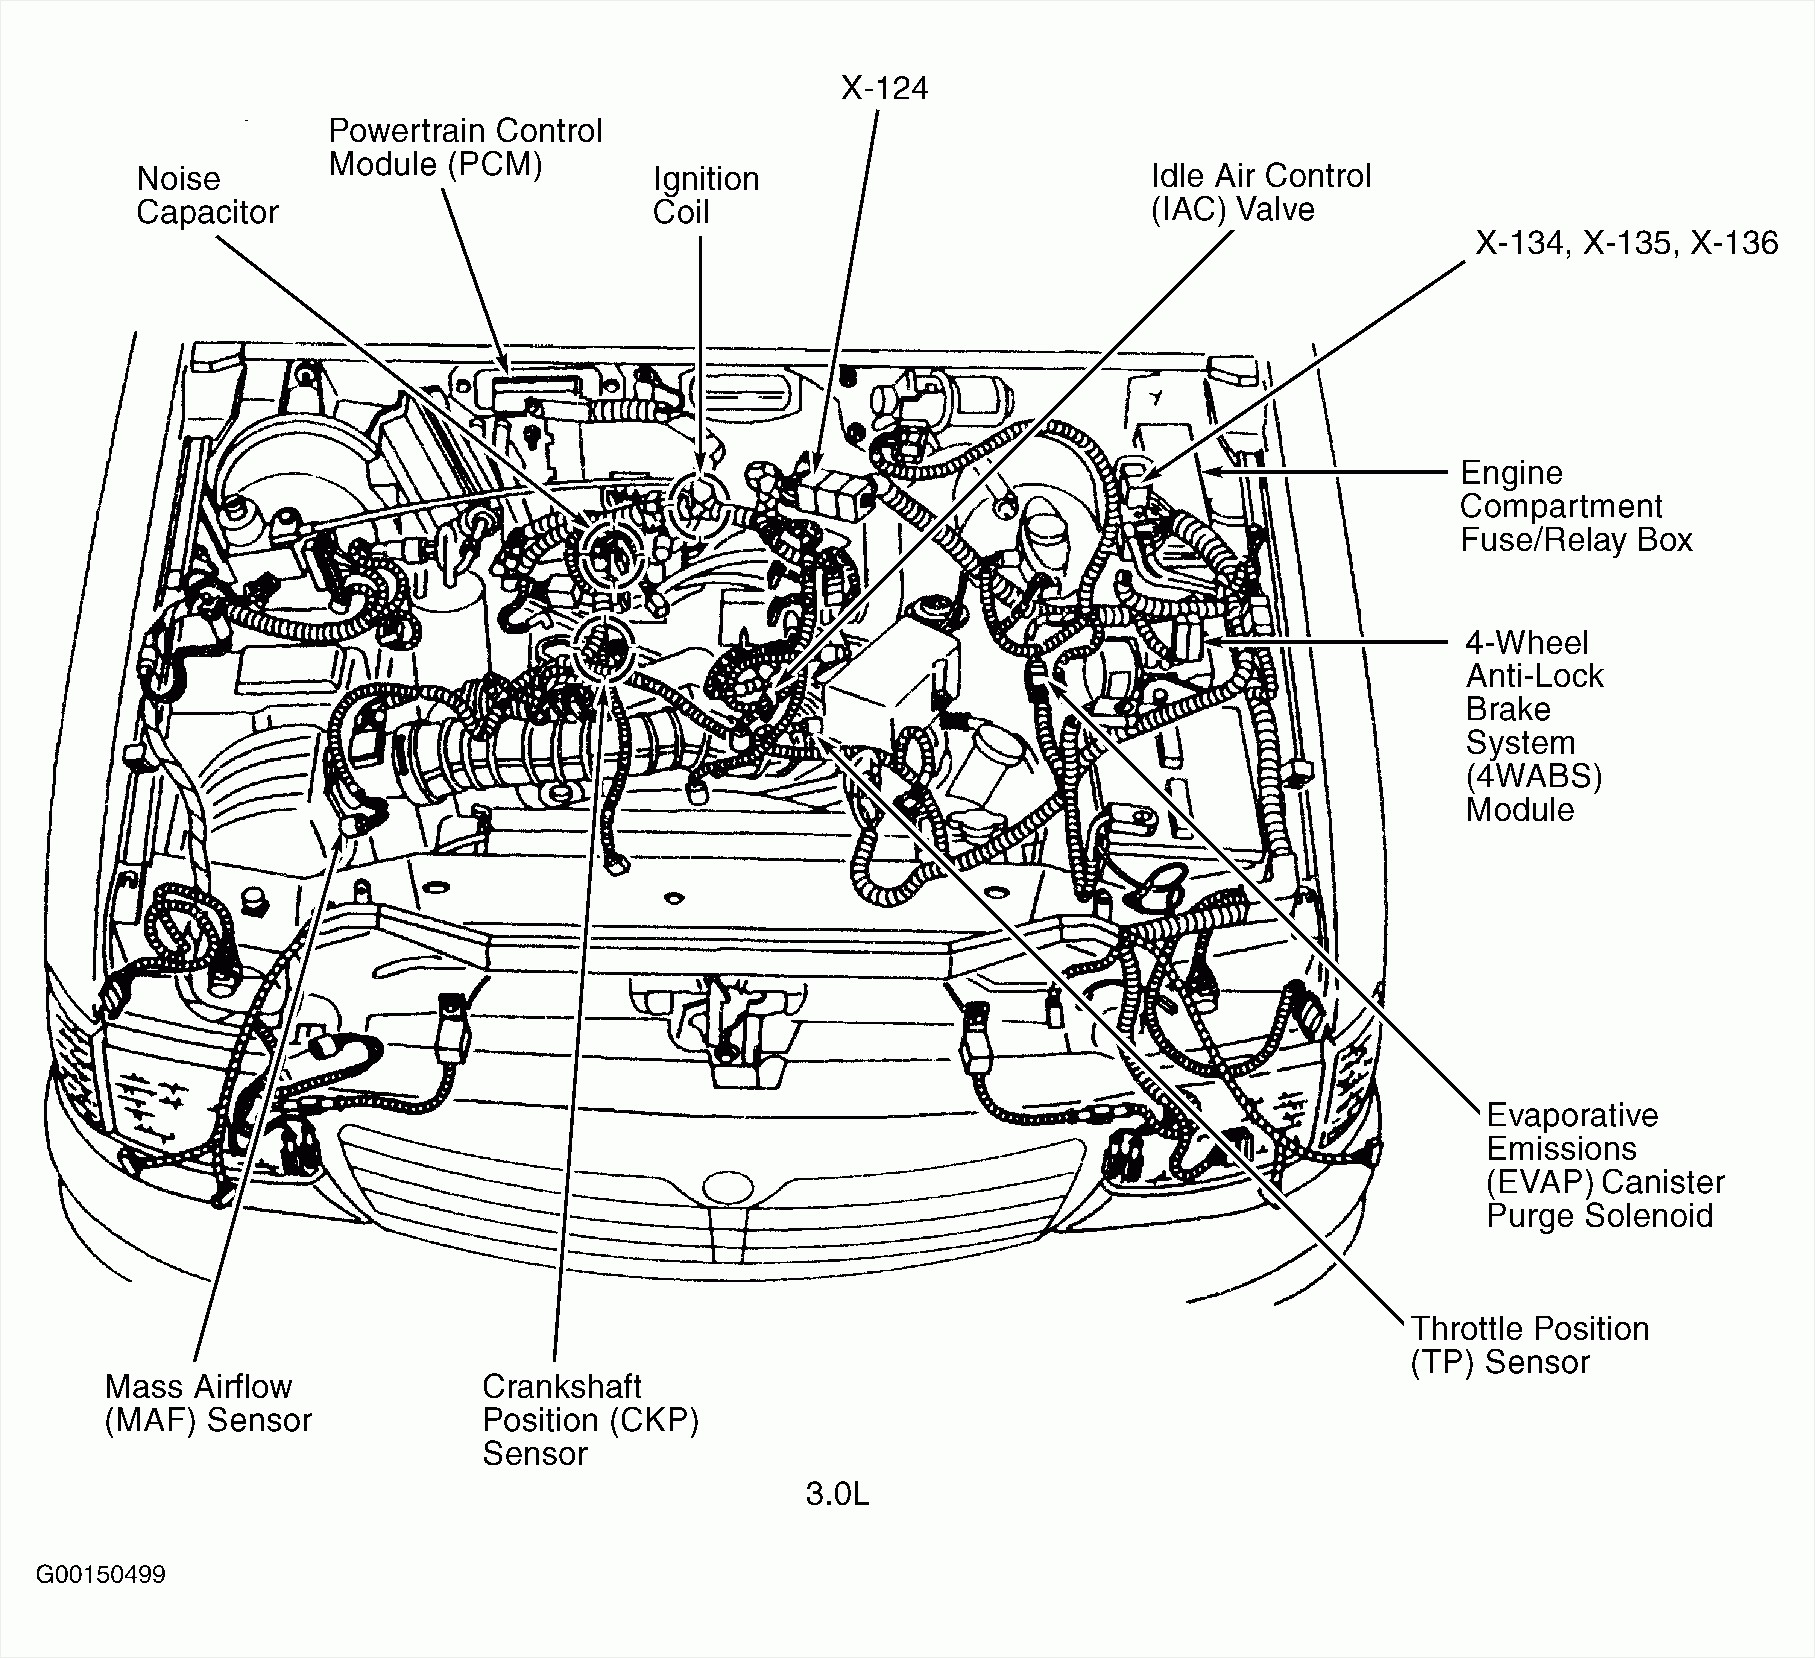 1991 Toyota Corolla Dx Wiring Diagram Schematic | Wiring Diagram on corolla brake diagram, corolla toyota, corolla exhaust diagram, corolla air conditioning diagram, corolla turn signal wiring, corolla engine diagram, corolla wheels, corolla headlight bulb replacement, corolla suspension diagram, corolla belt diagram, corolla parts diagram, corolla steering diagram, corolla fuse diagram, corolla shock absorber, corolla transmission diagram,